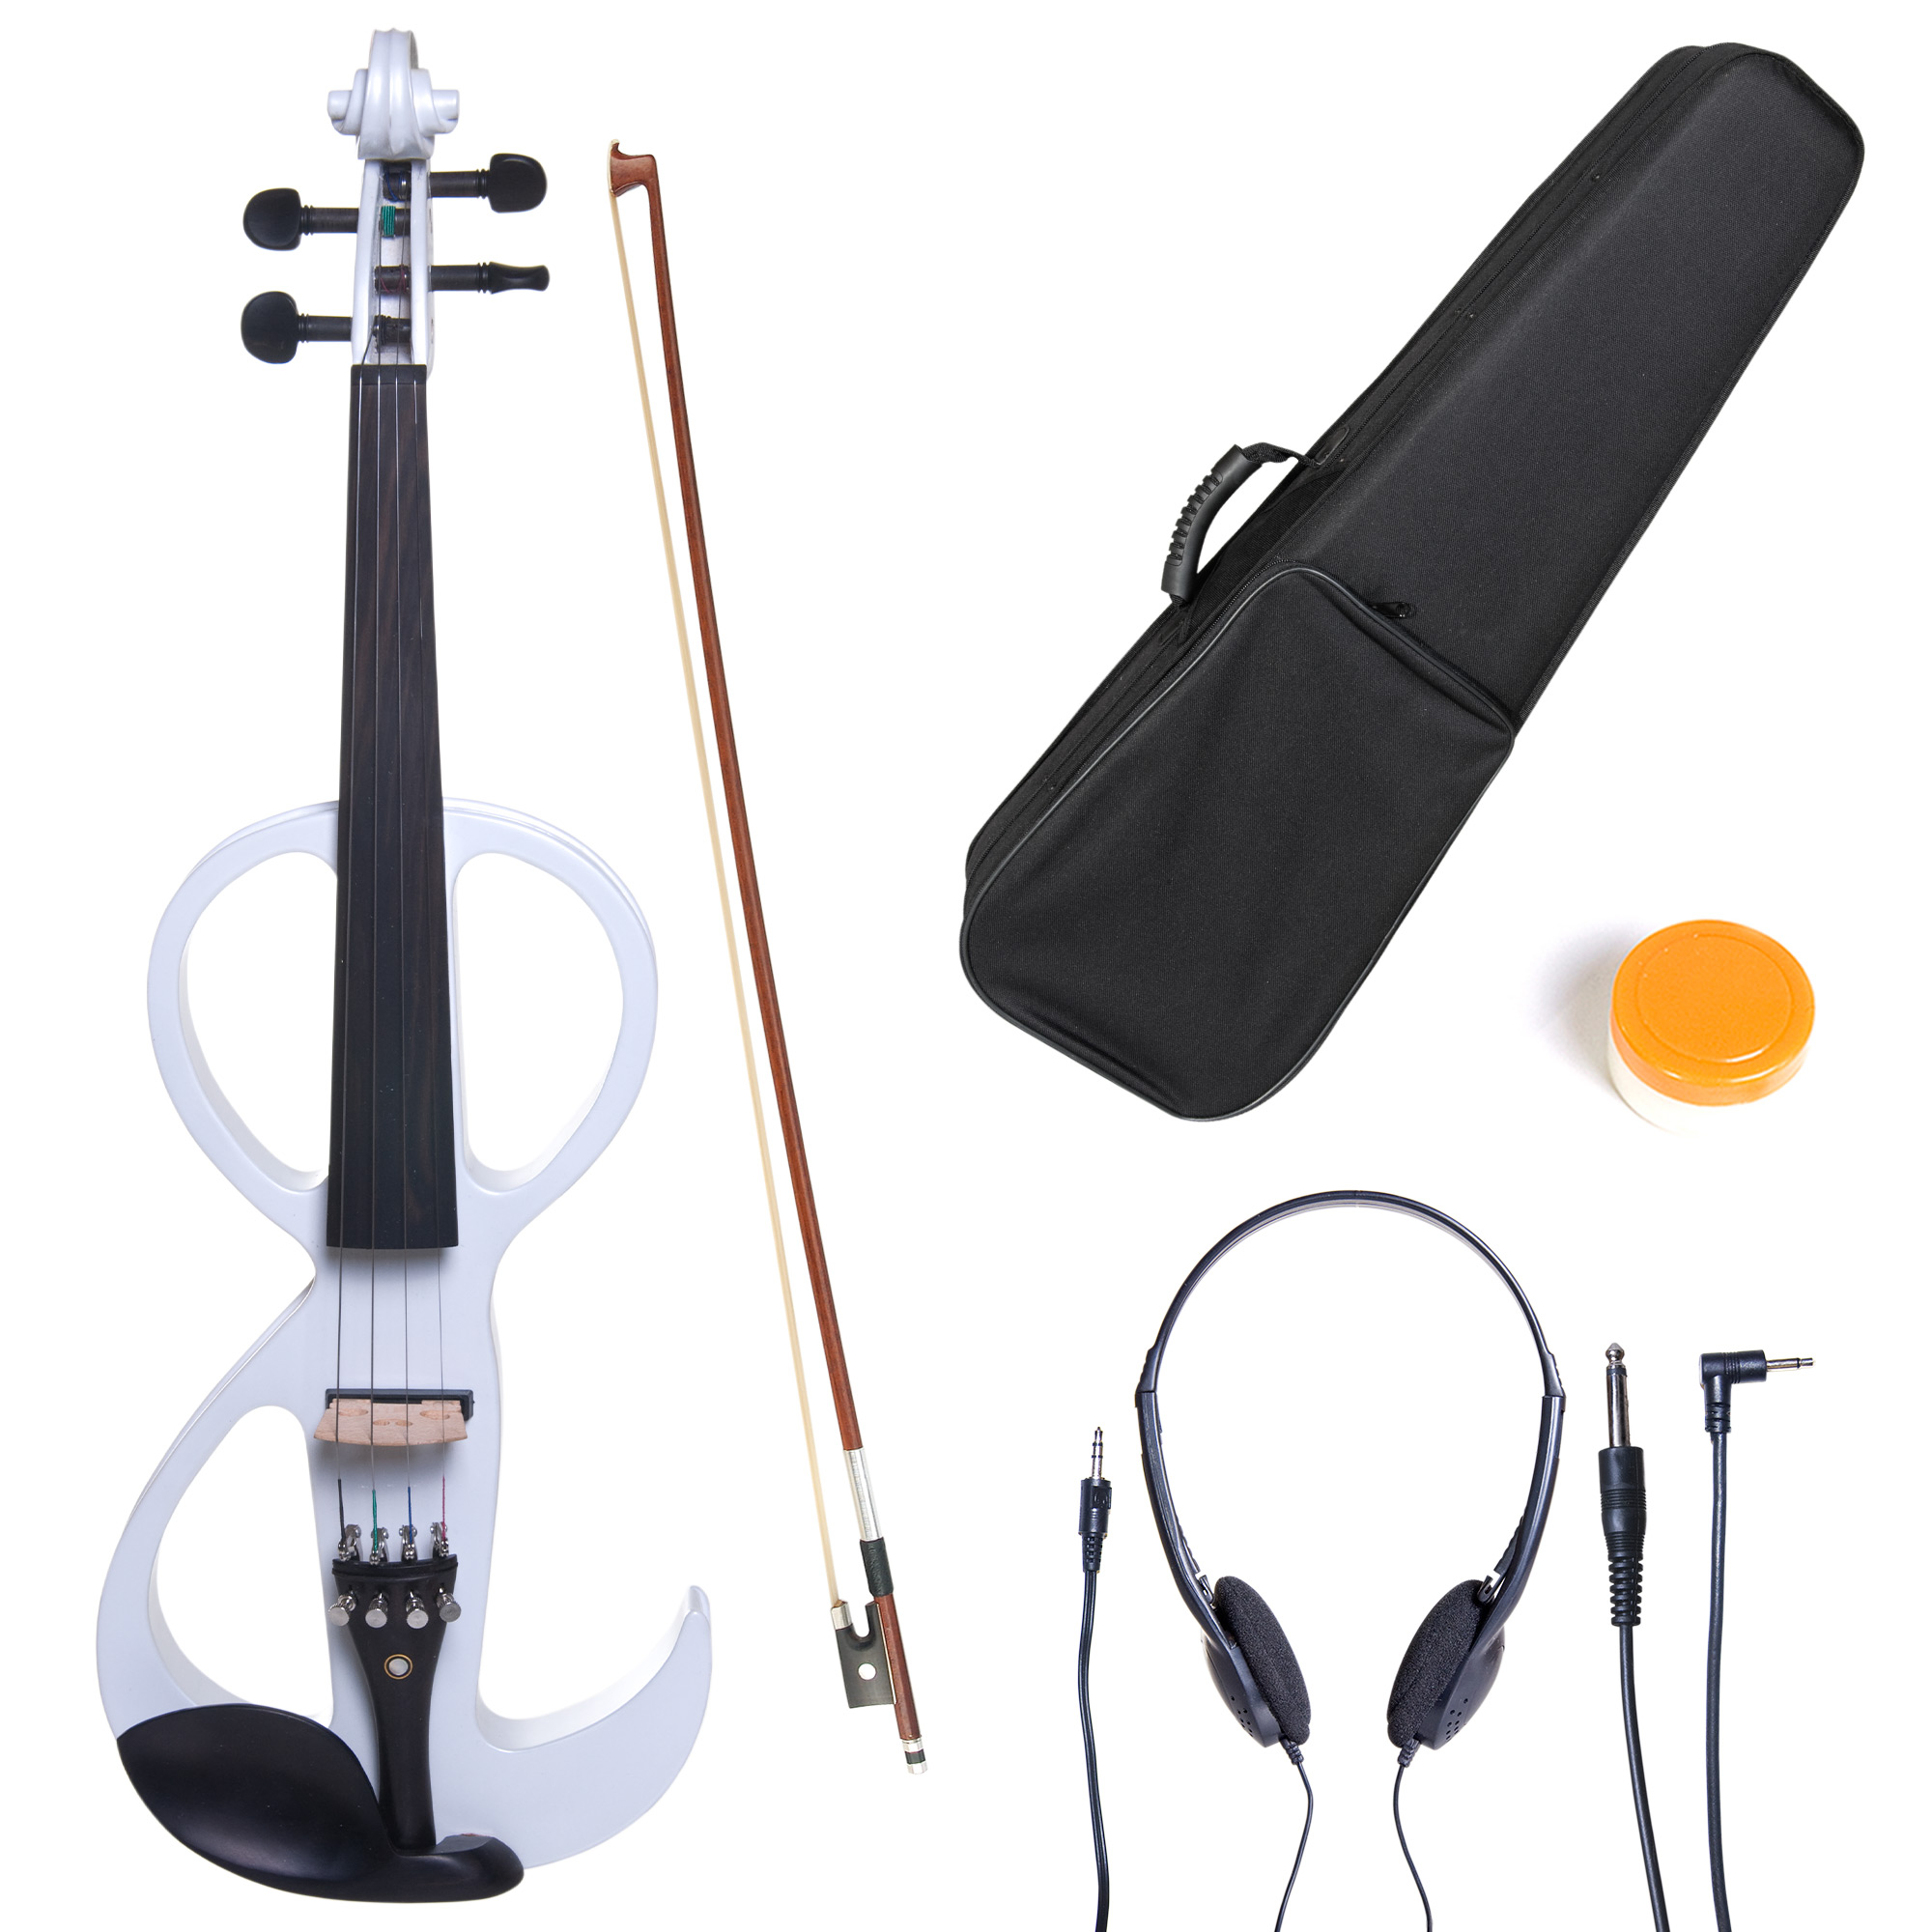 Cecilio 4/4 CEVN-3W Solidwood Pearl White Electric/Silent Violin with Ebony Fittings-Full Size